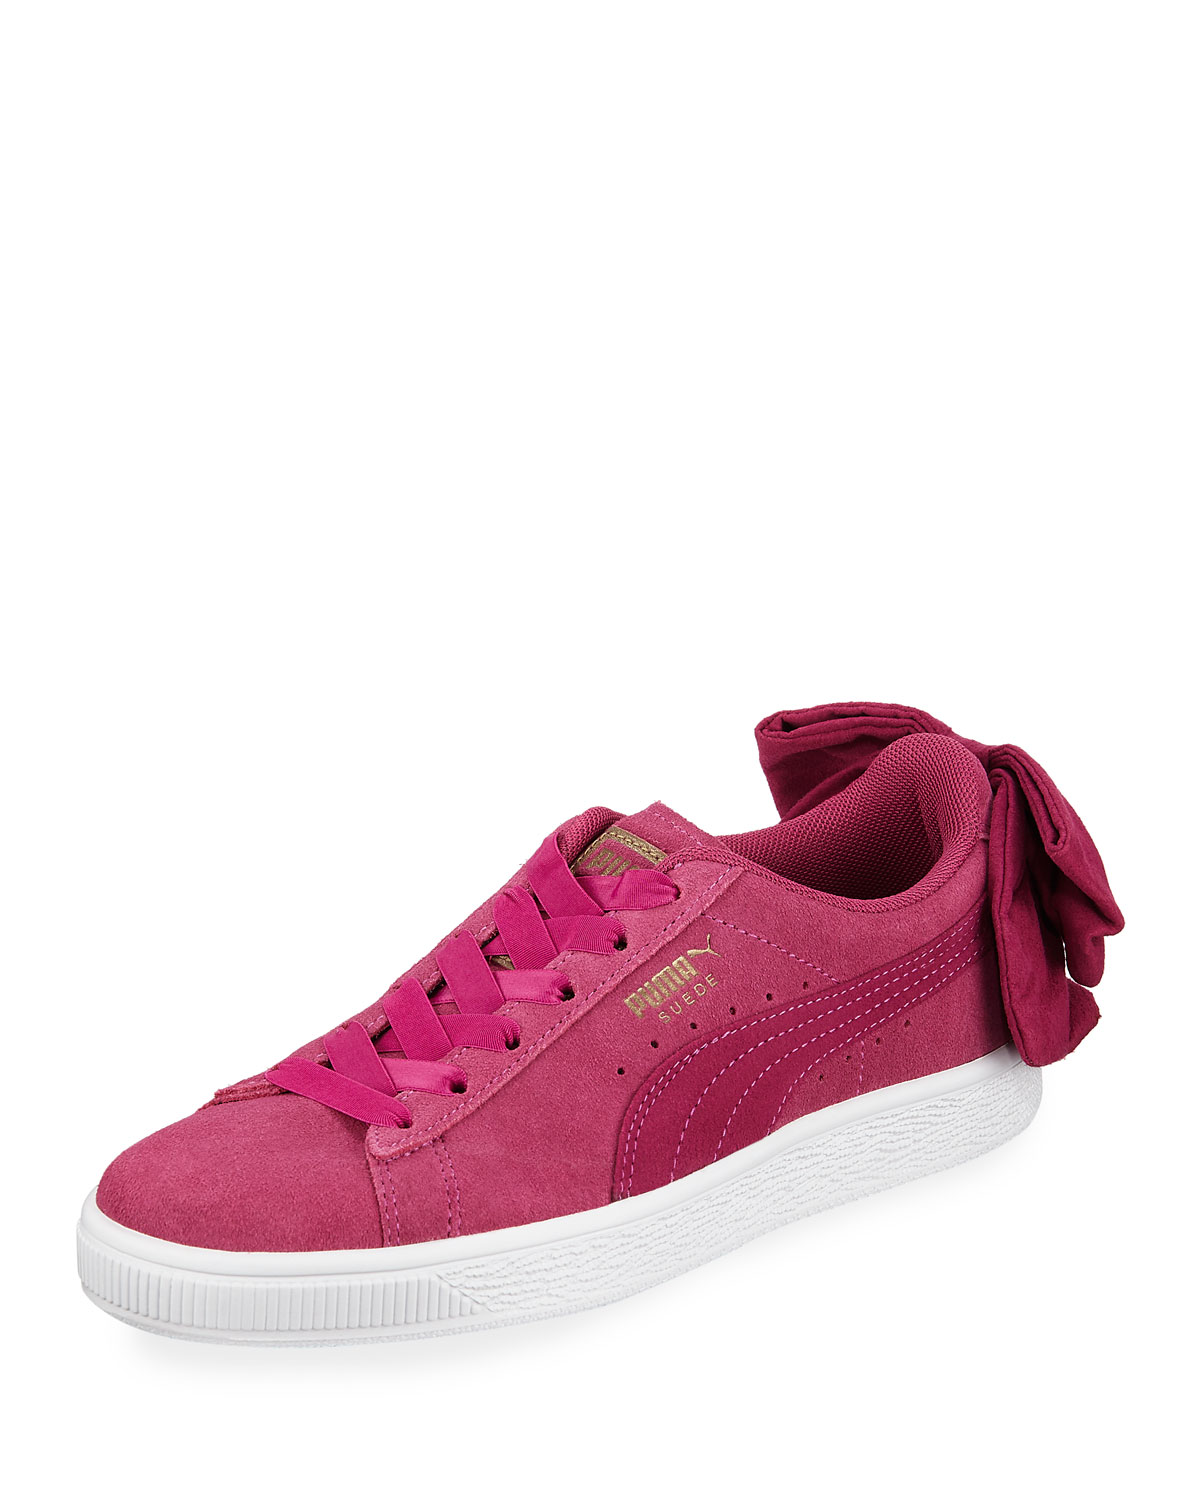 e7c25832dc79 Puma Women s Basket Suede Bow Sneakers